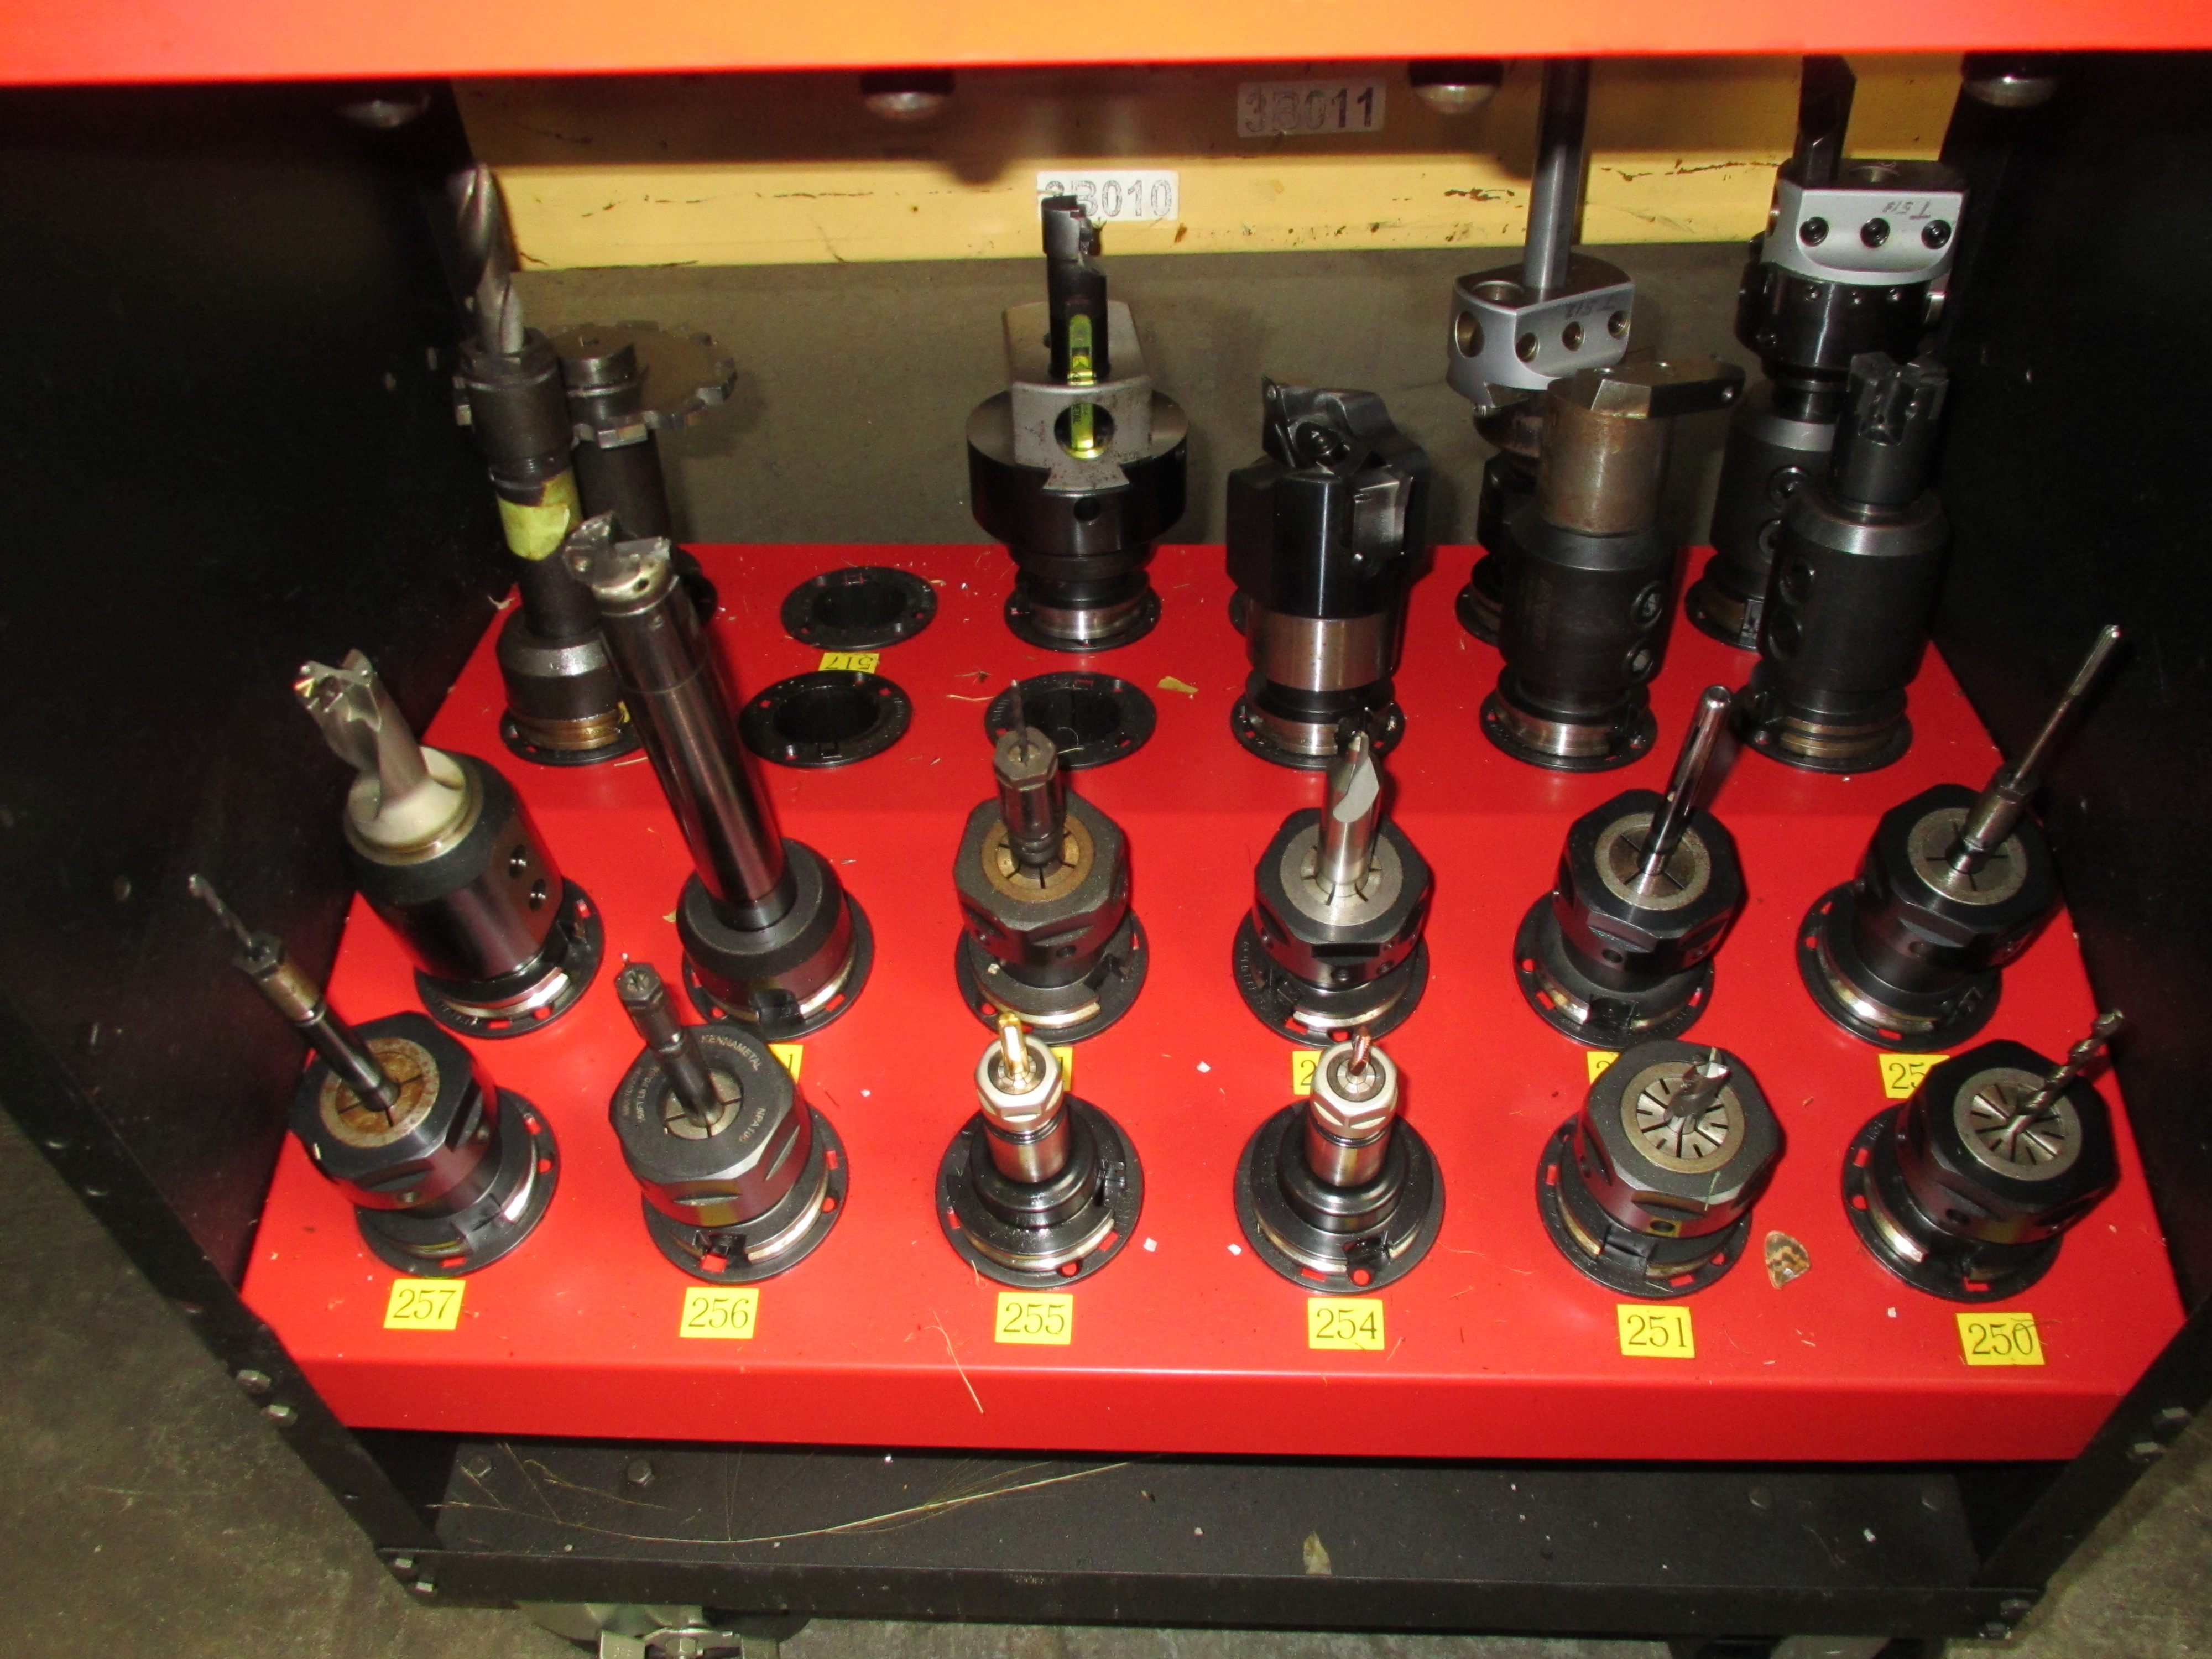 CAT-40 Tool Holders with Hout ToolScout Rolling Tool Cart - Image 4 of 4